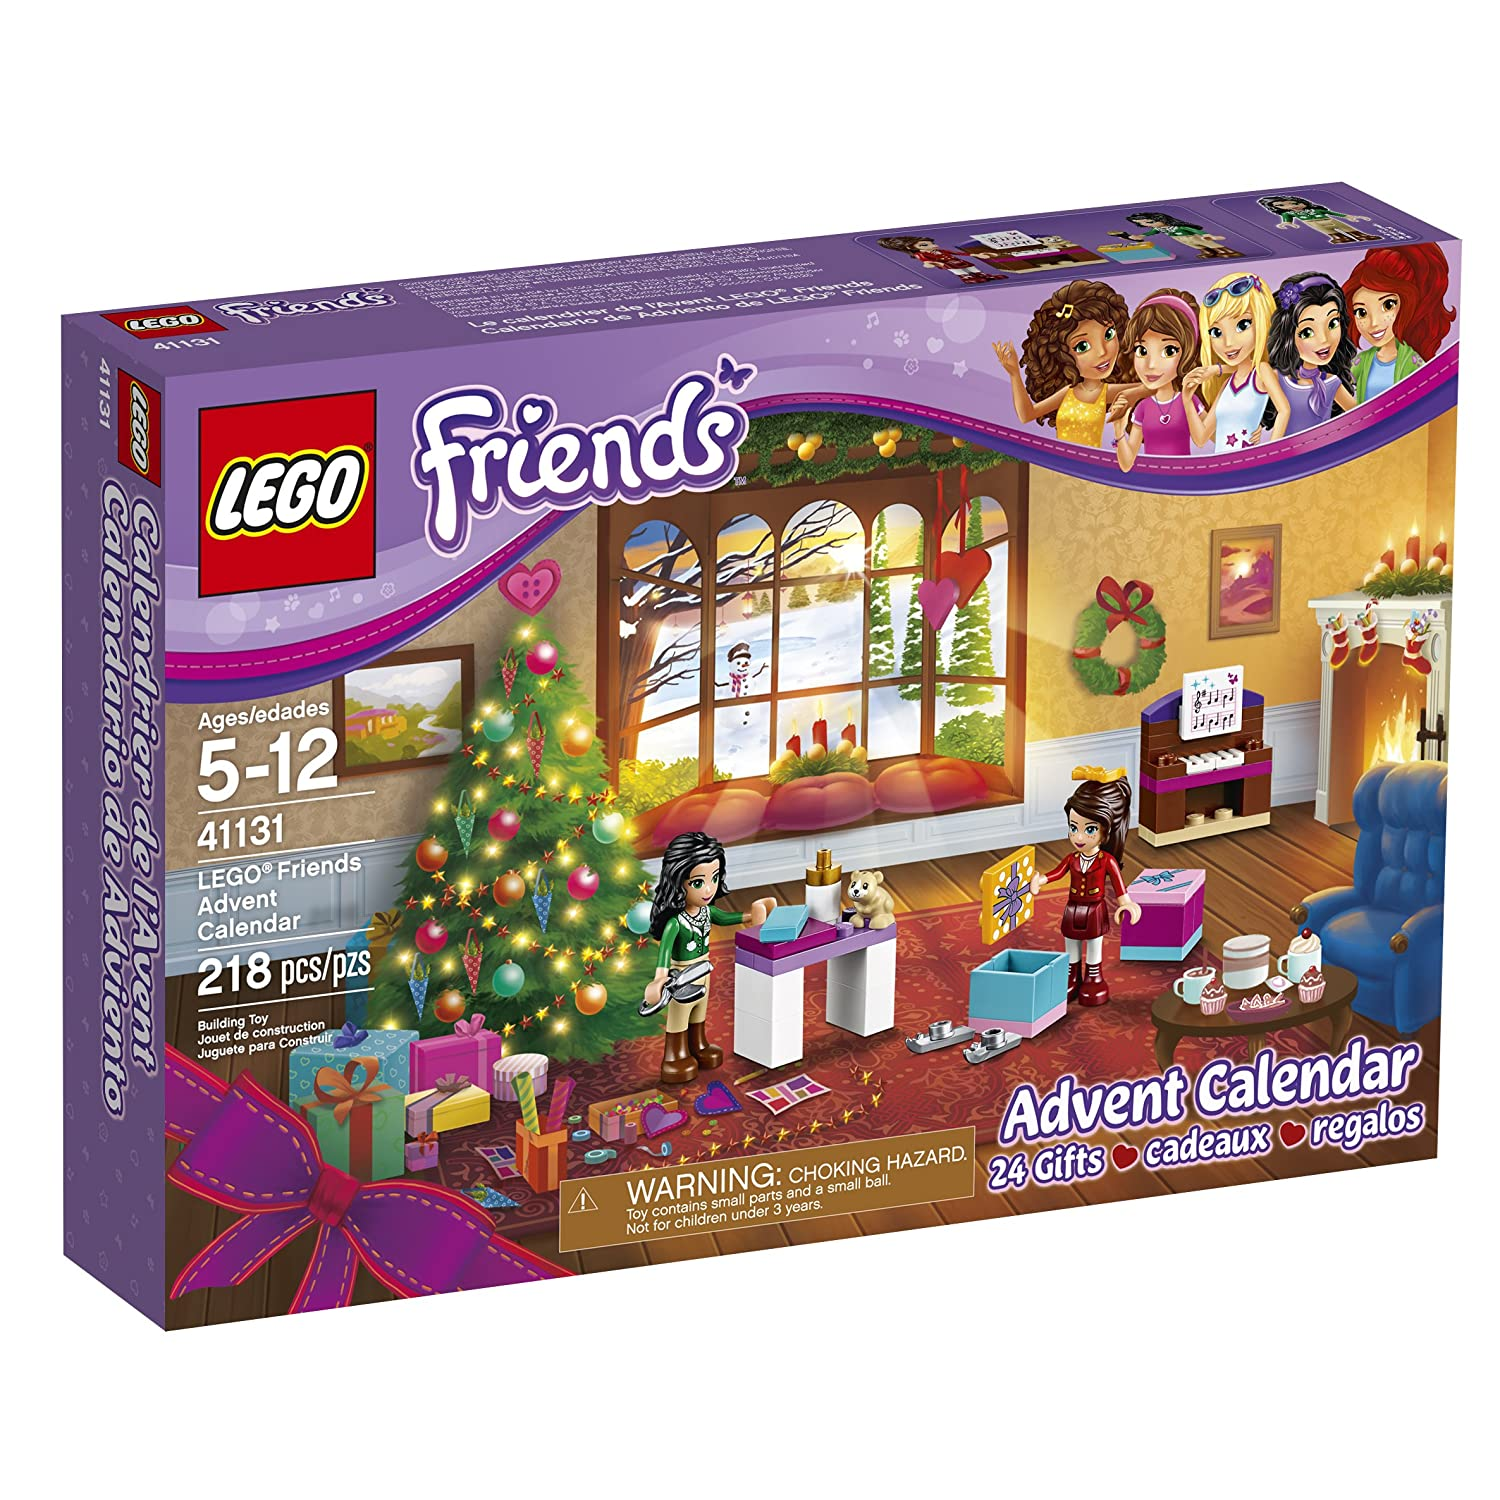 amazoncom lego friends 41131 advent calendar building kit 218 piece discontinued by manufacturer toys games